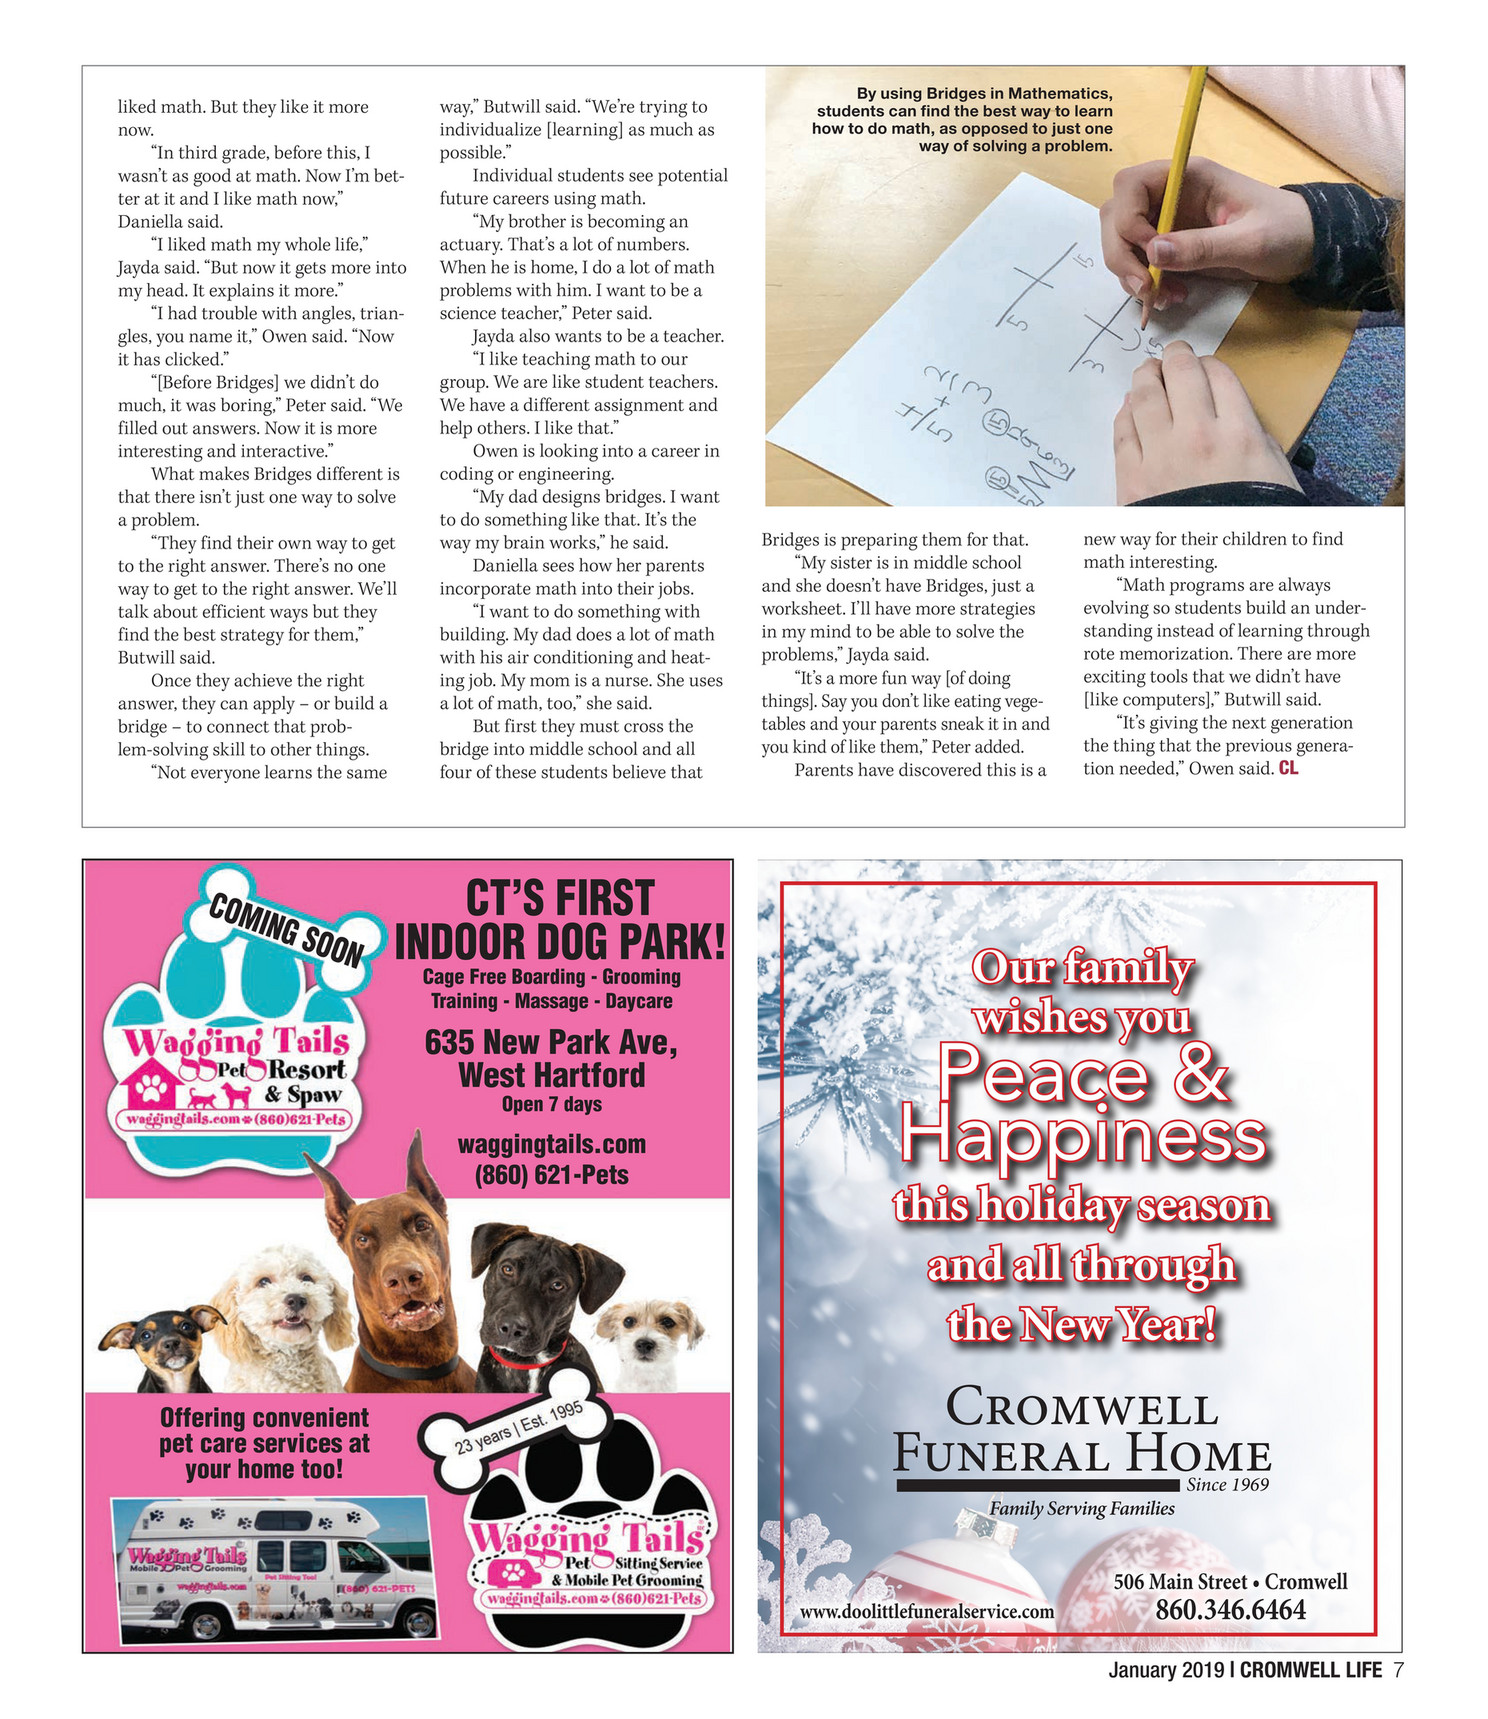 My publications - CRML_0119_Layout - Page 6-7 - Created with